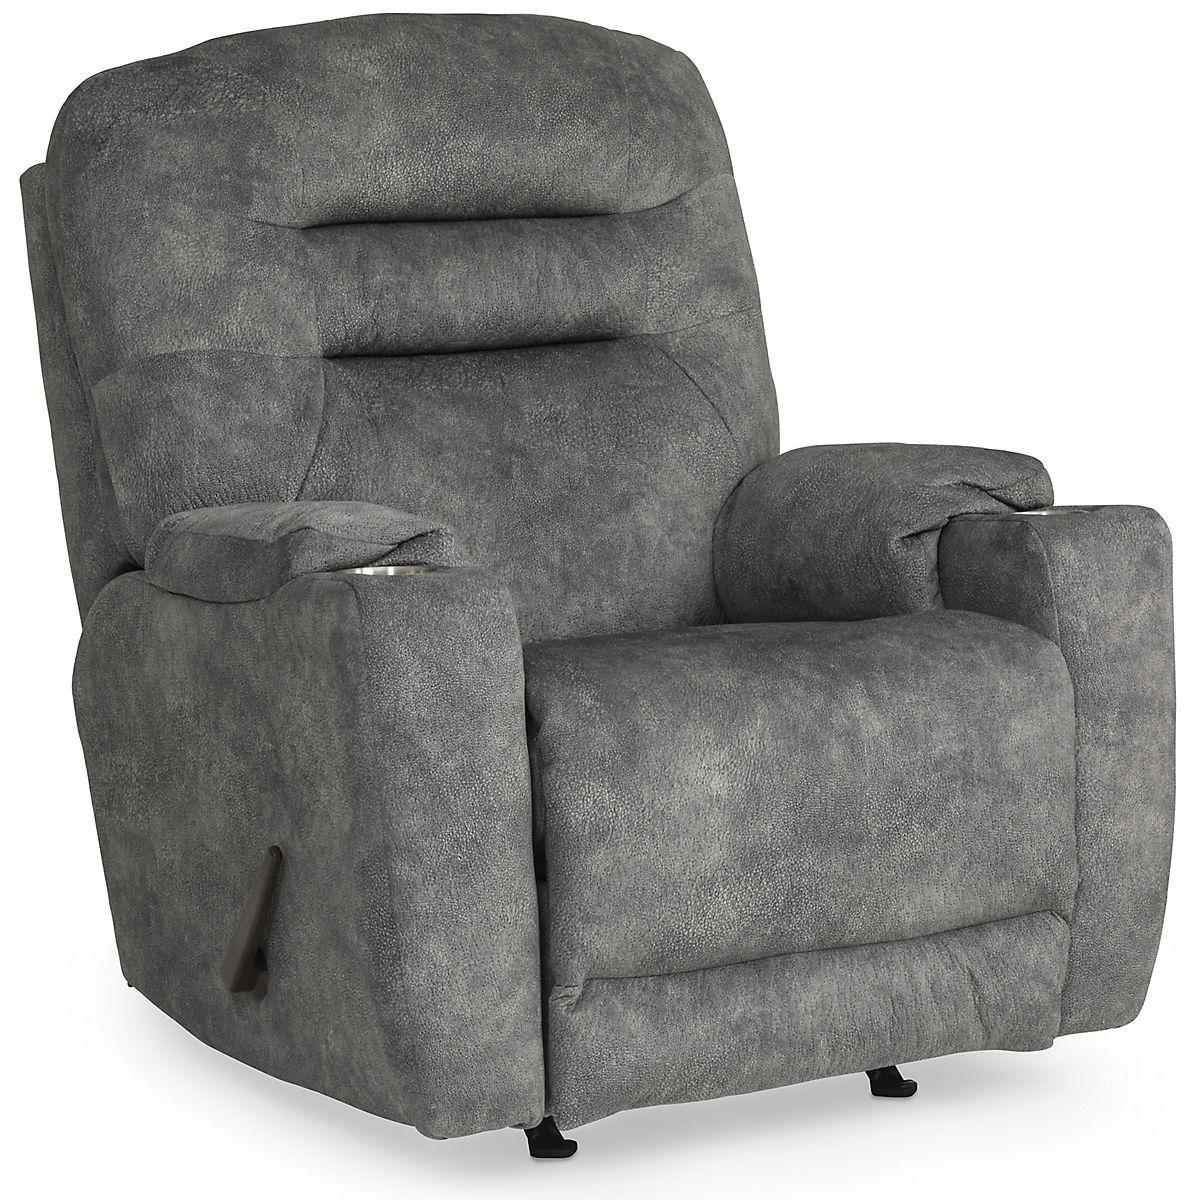 A picture containing seat, stone, old, chair  Description automatically generated